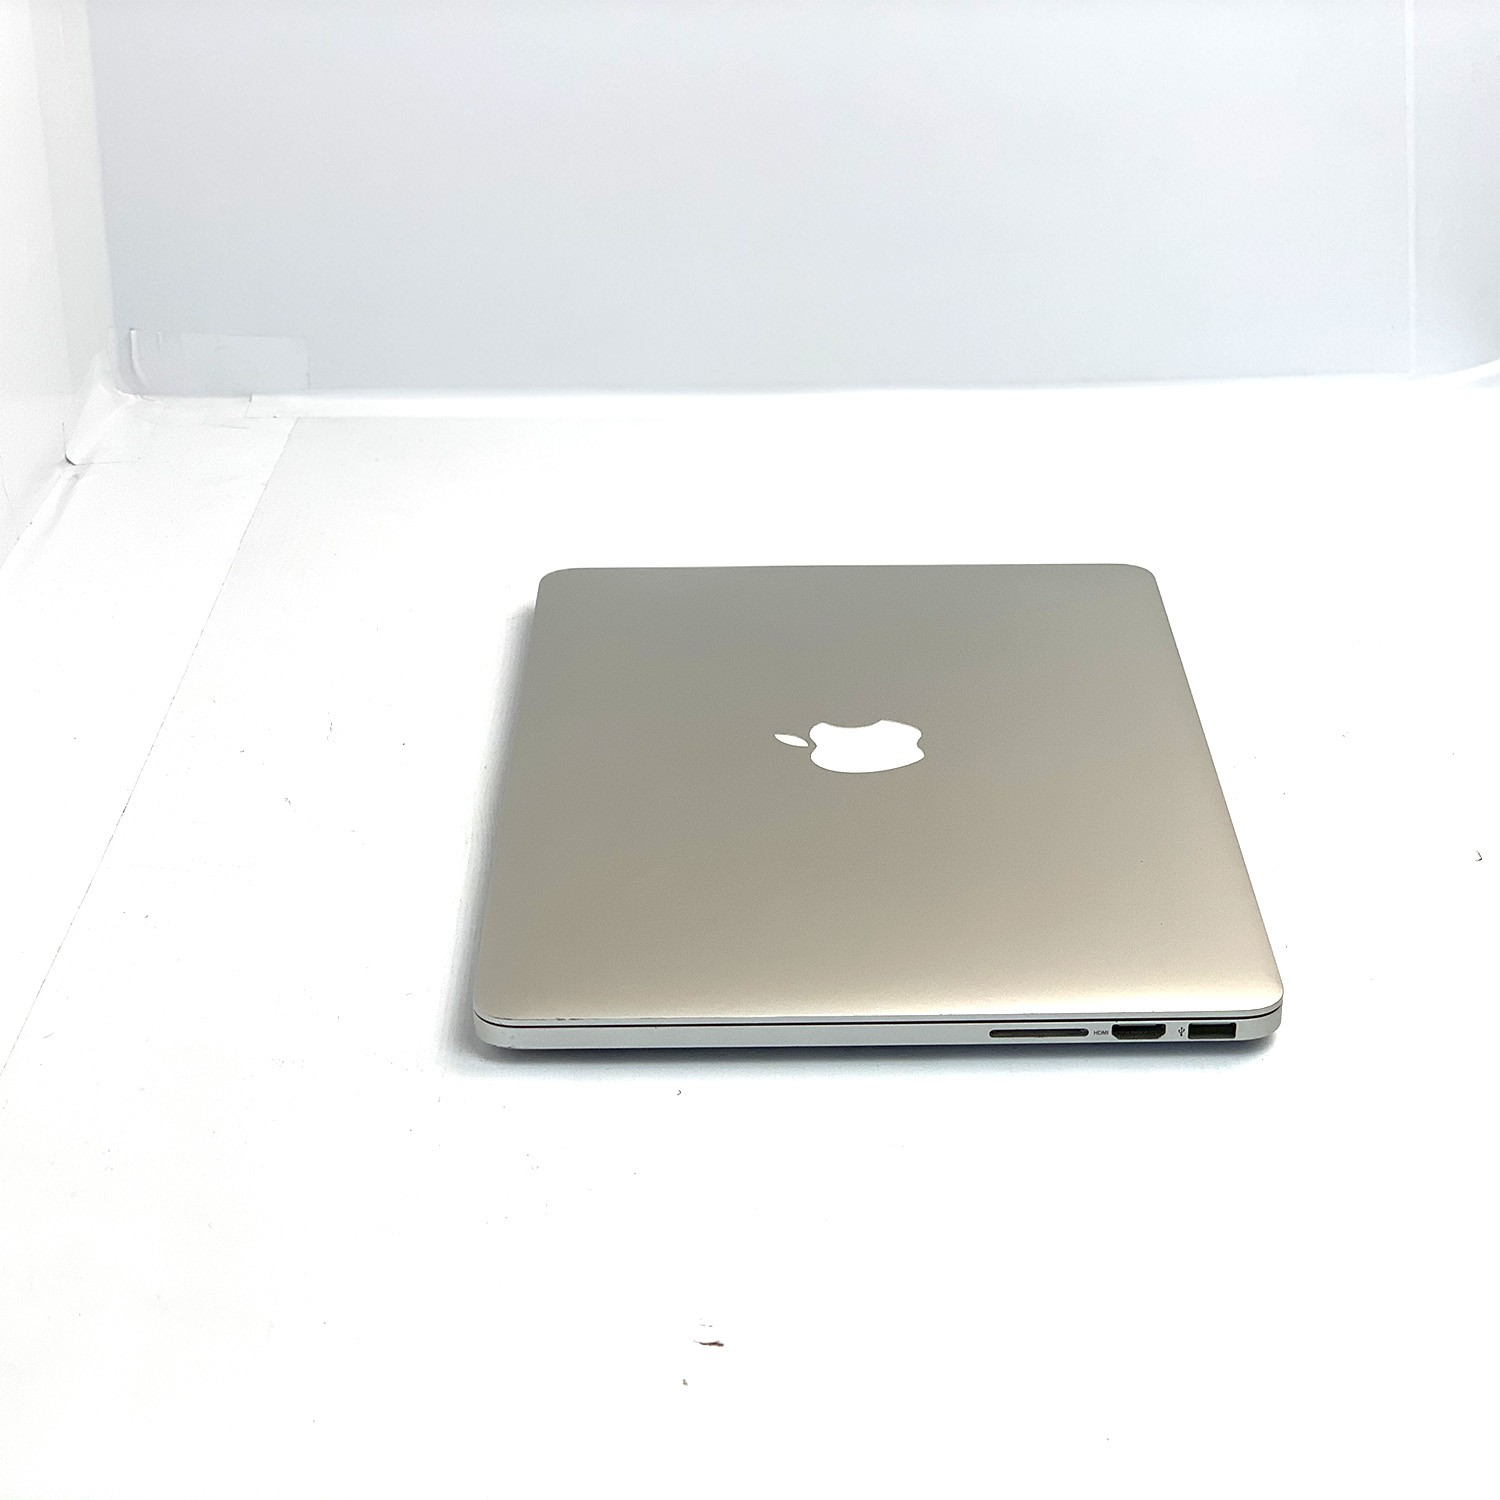 Macbook Pro Retina 13 i5 2.4Ghz 4GB 512GB SSD ME864LL/A Seminovo